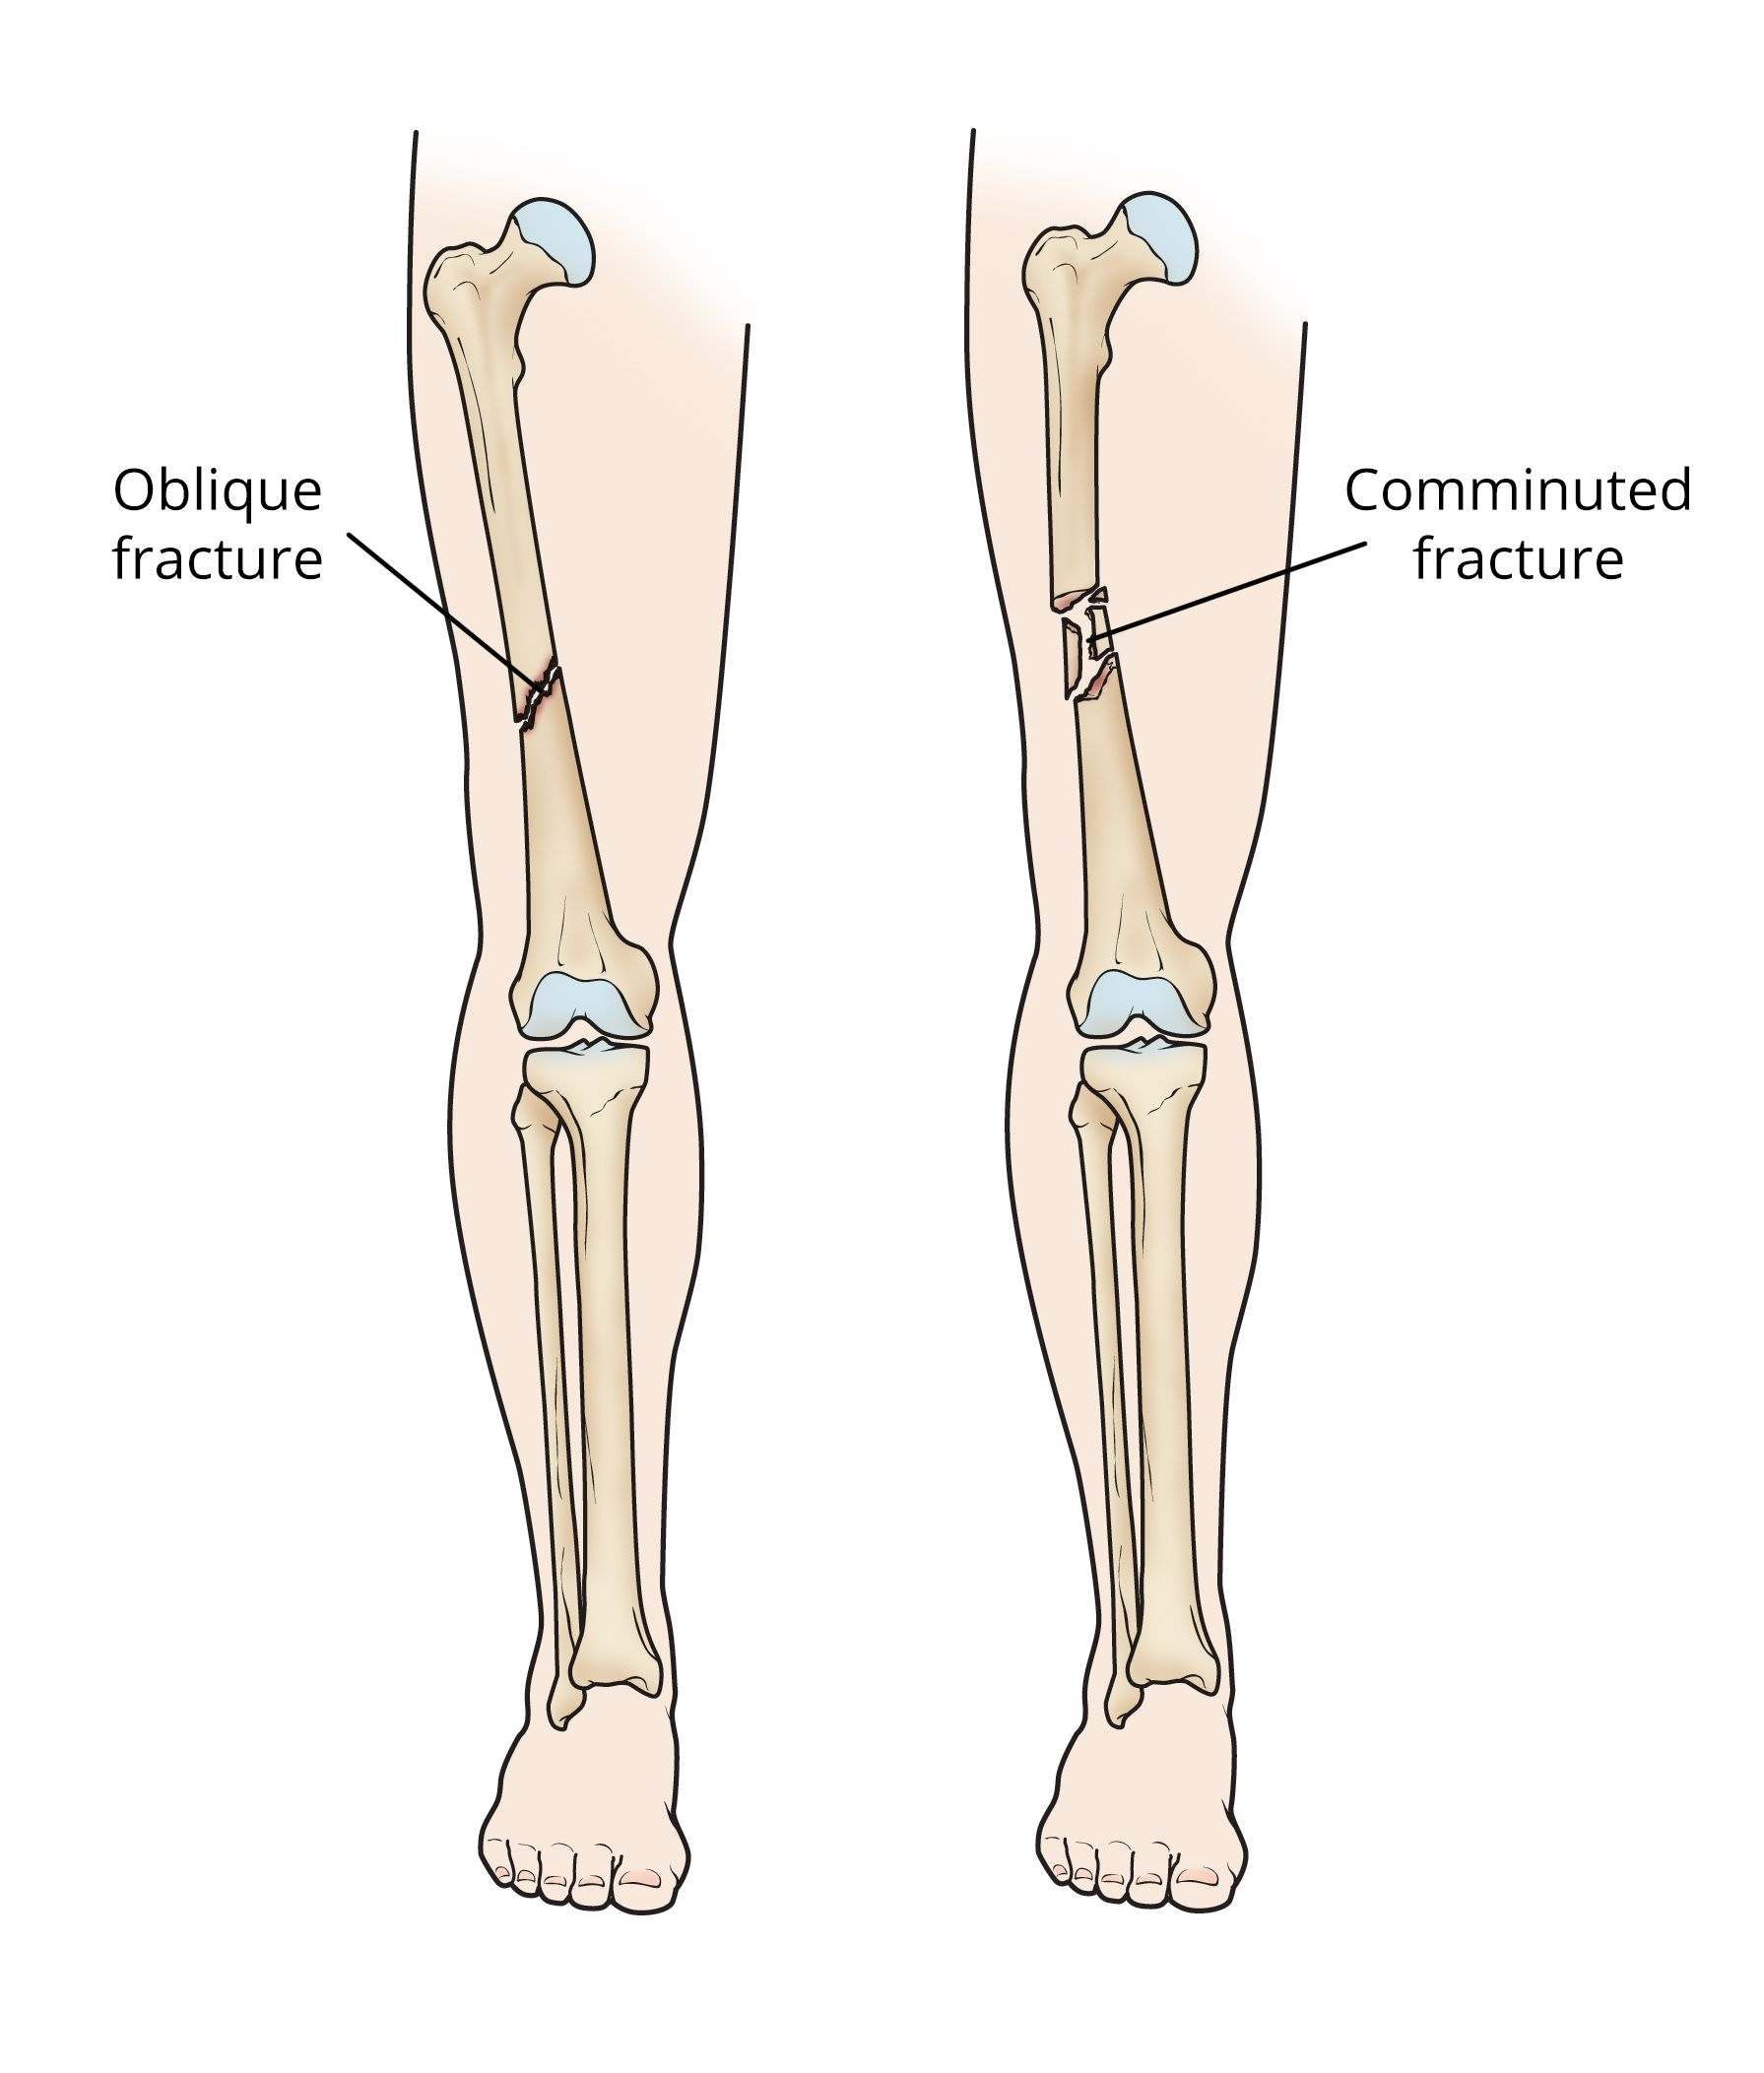 Oblique and comminuted femoral shaft fractures